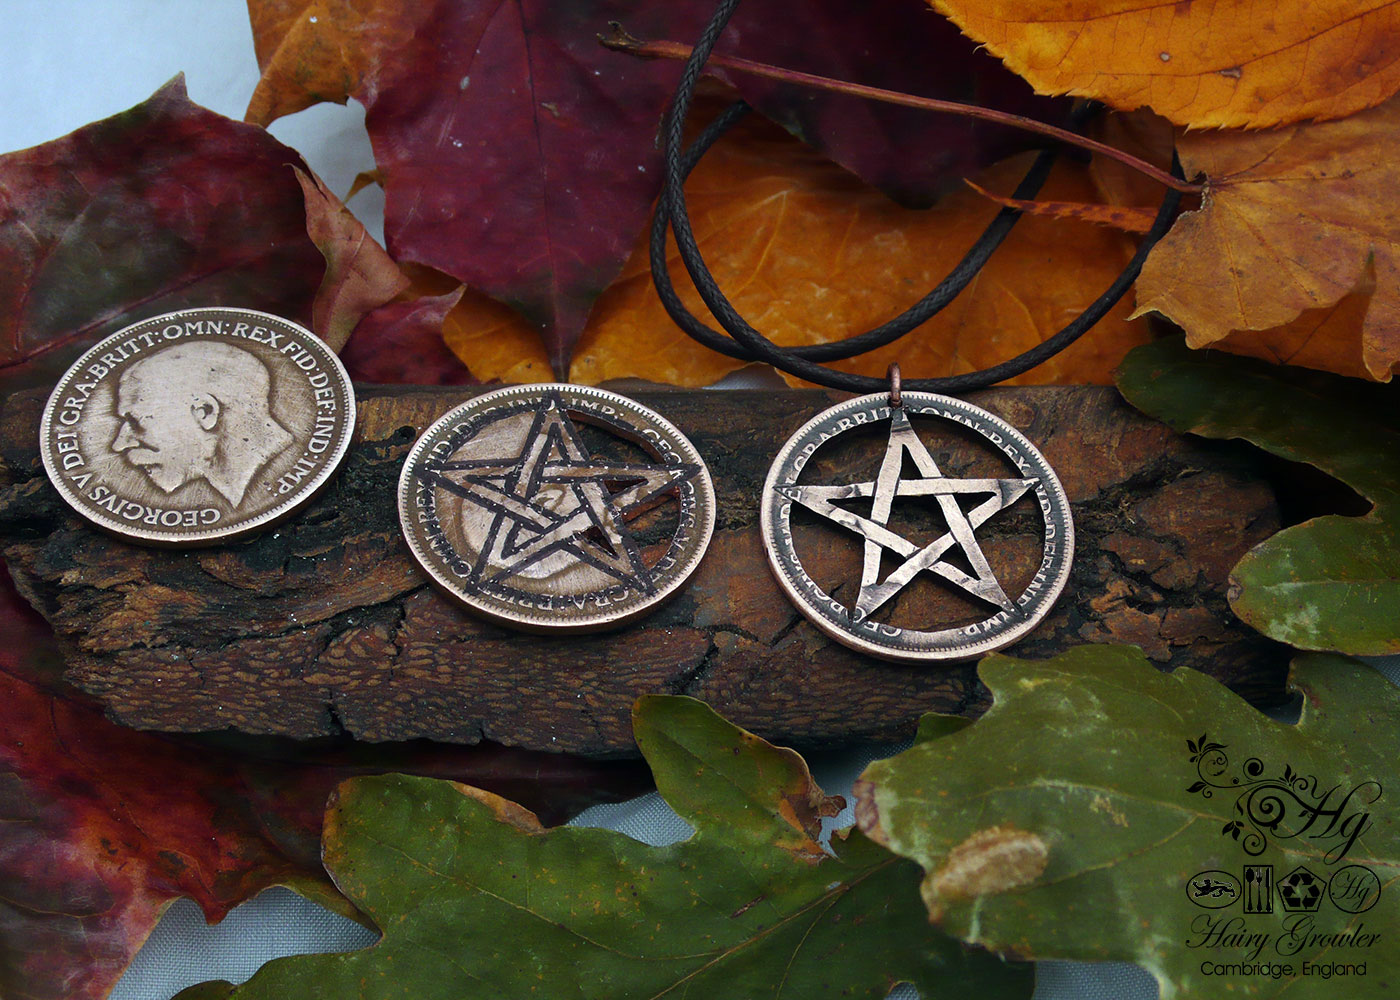 Hand cut pentacle coin pendant made as a personal talisman